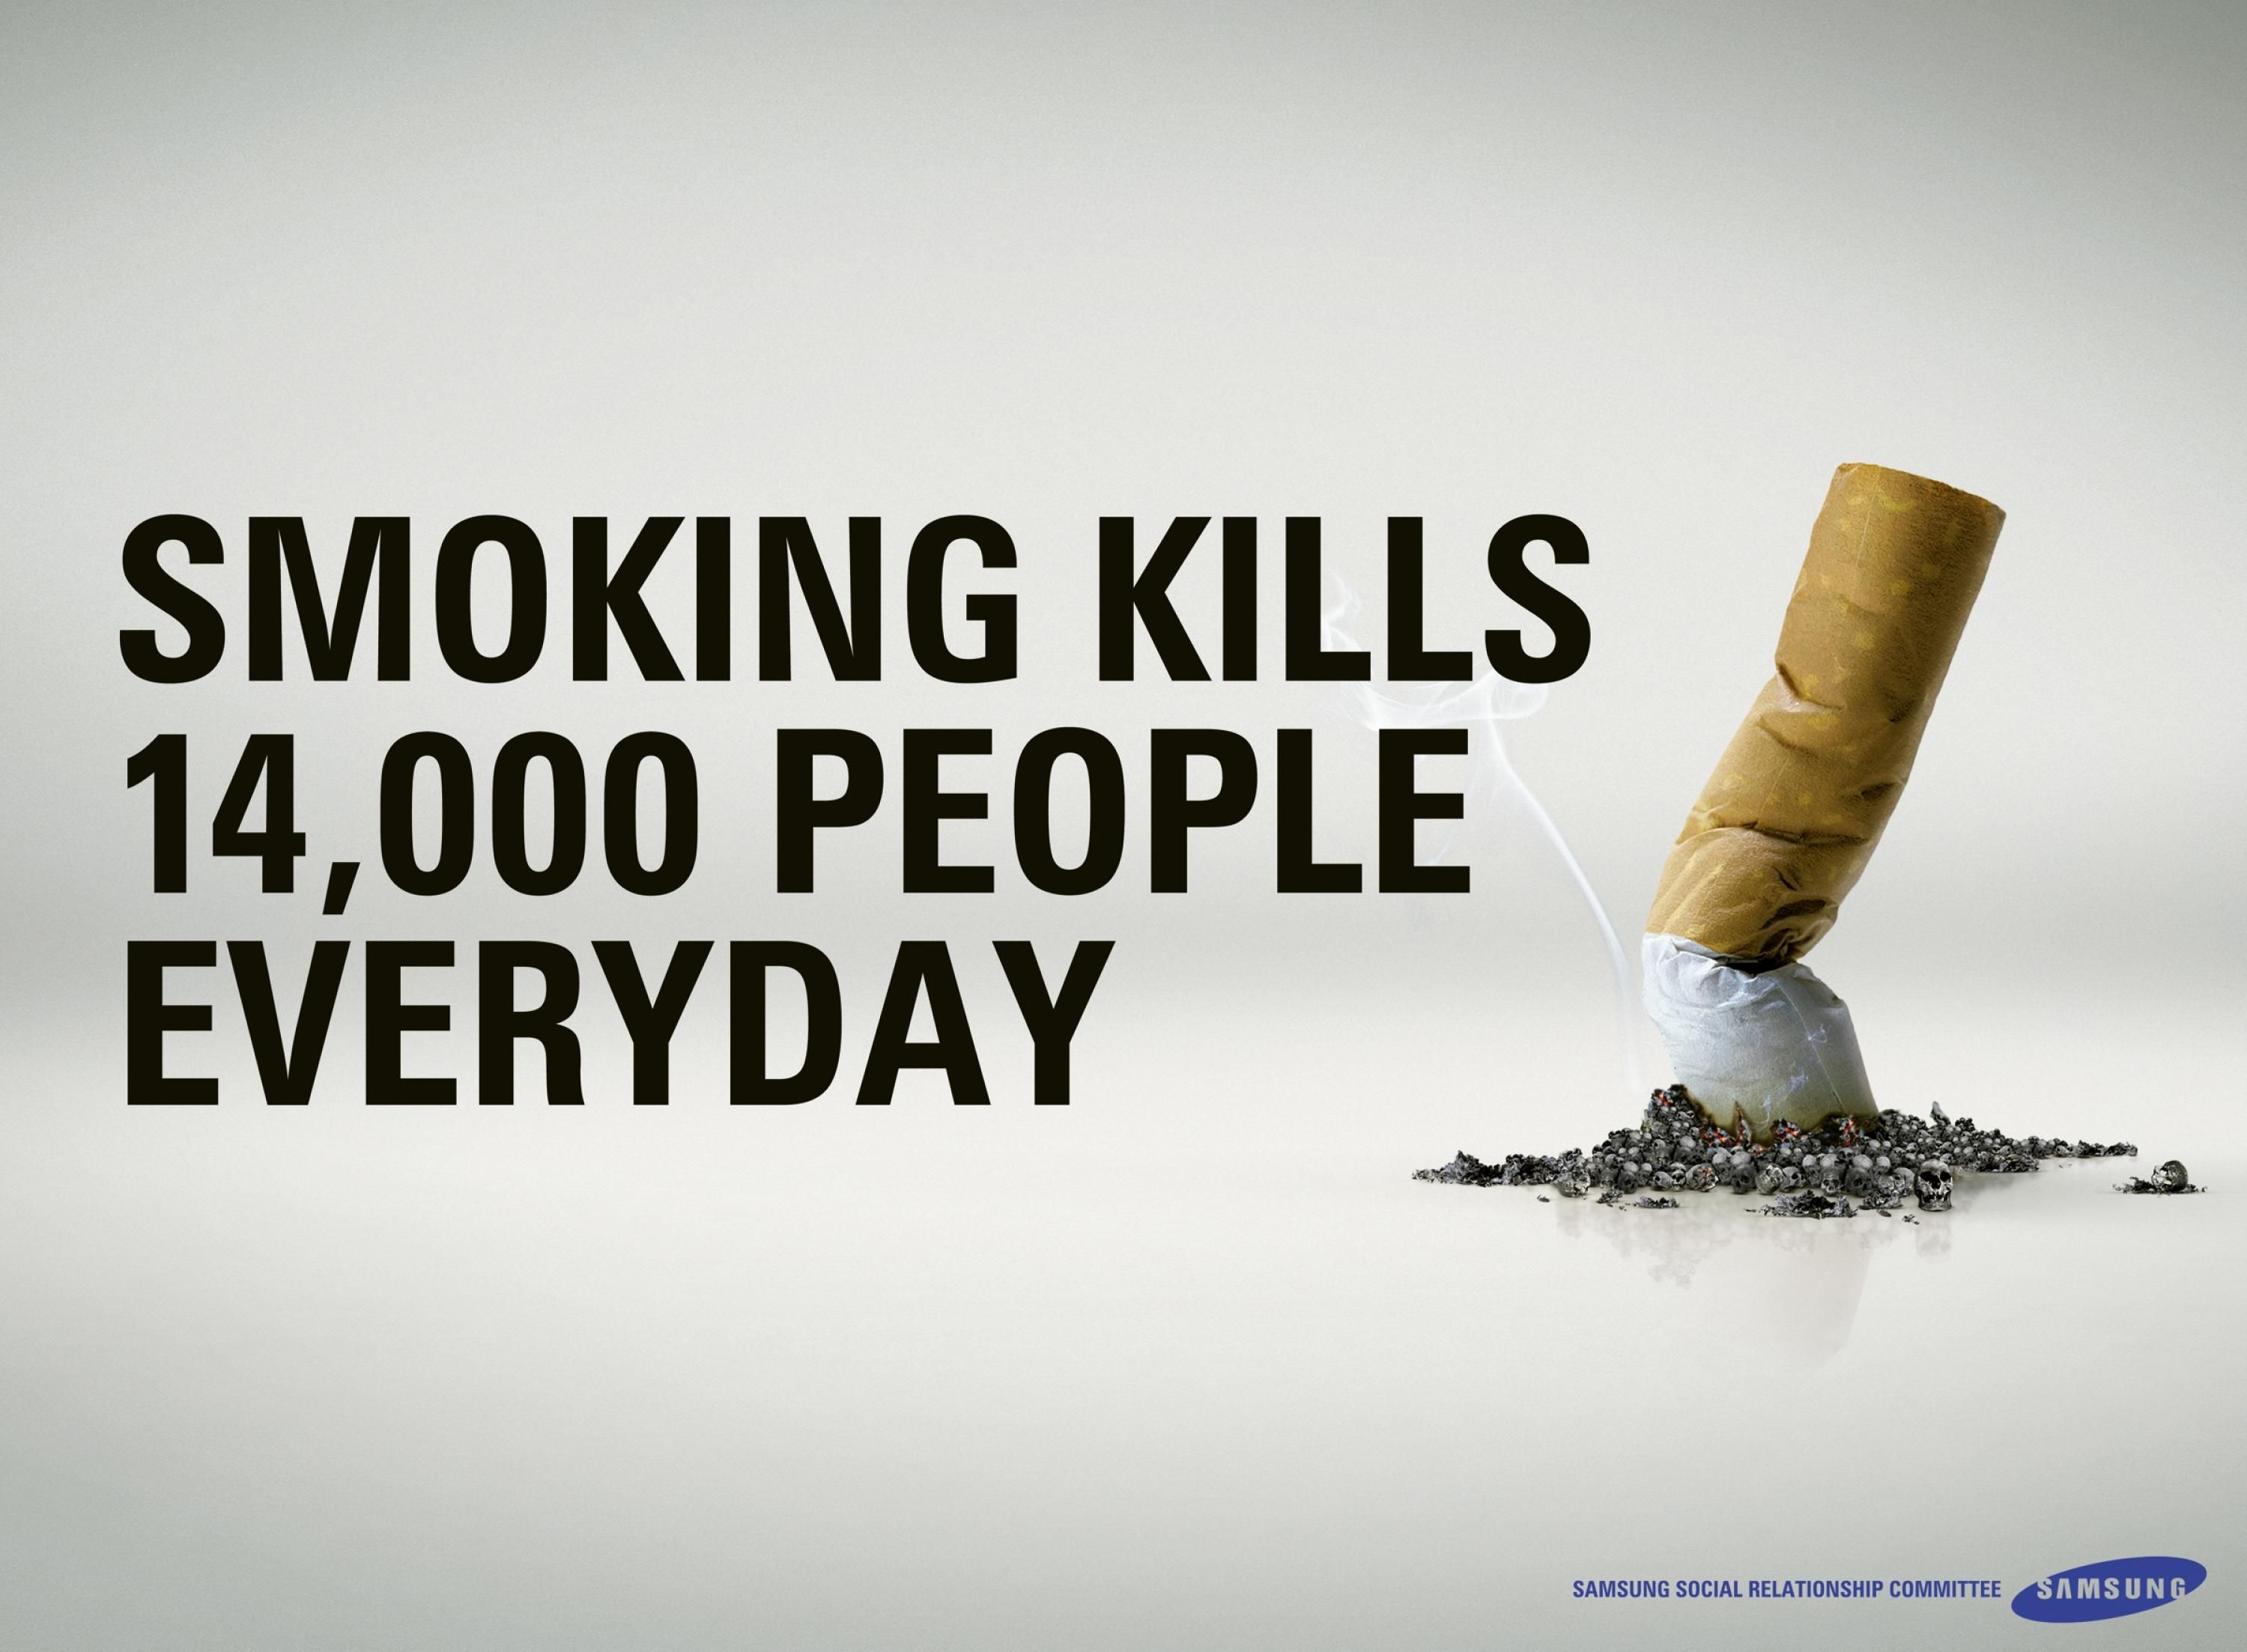 samsung social relationship committee anti smoking message no samsung social relationship committee anti smoking message no smoking